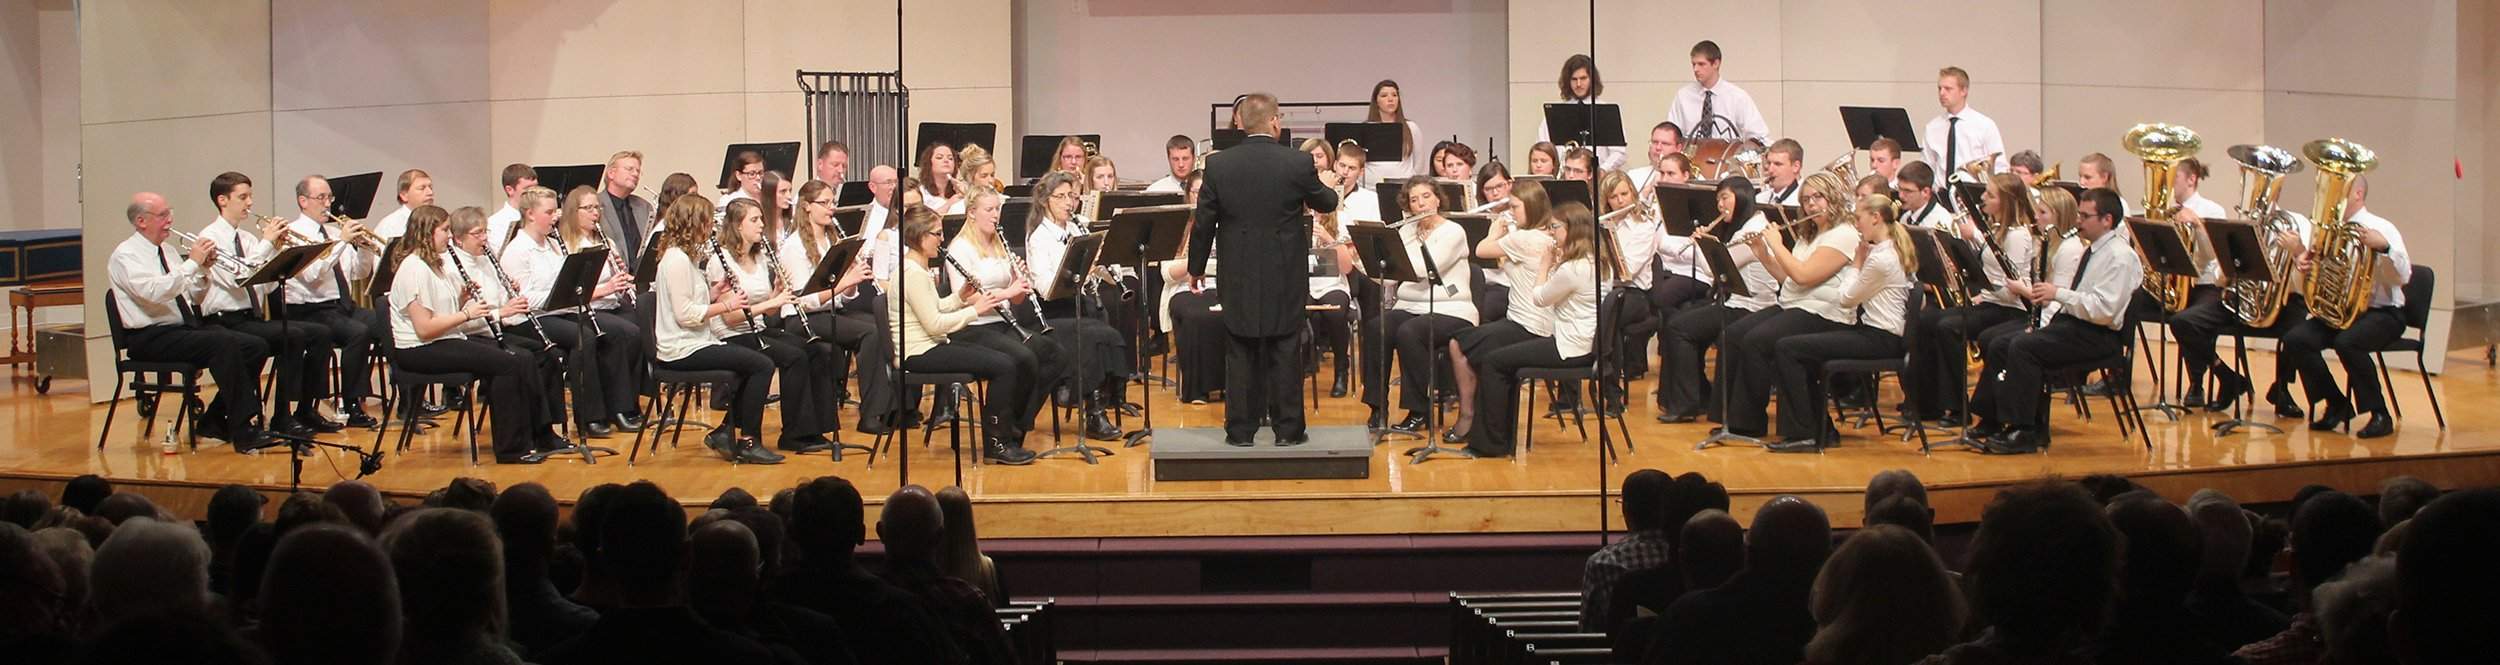 The Dordt campus-community band giving a performance on stage.